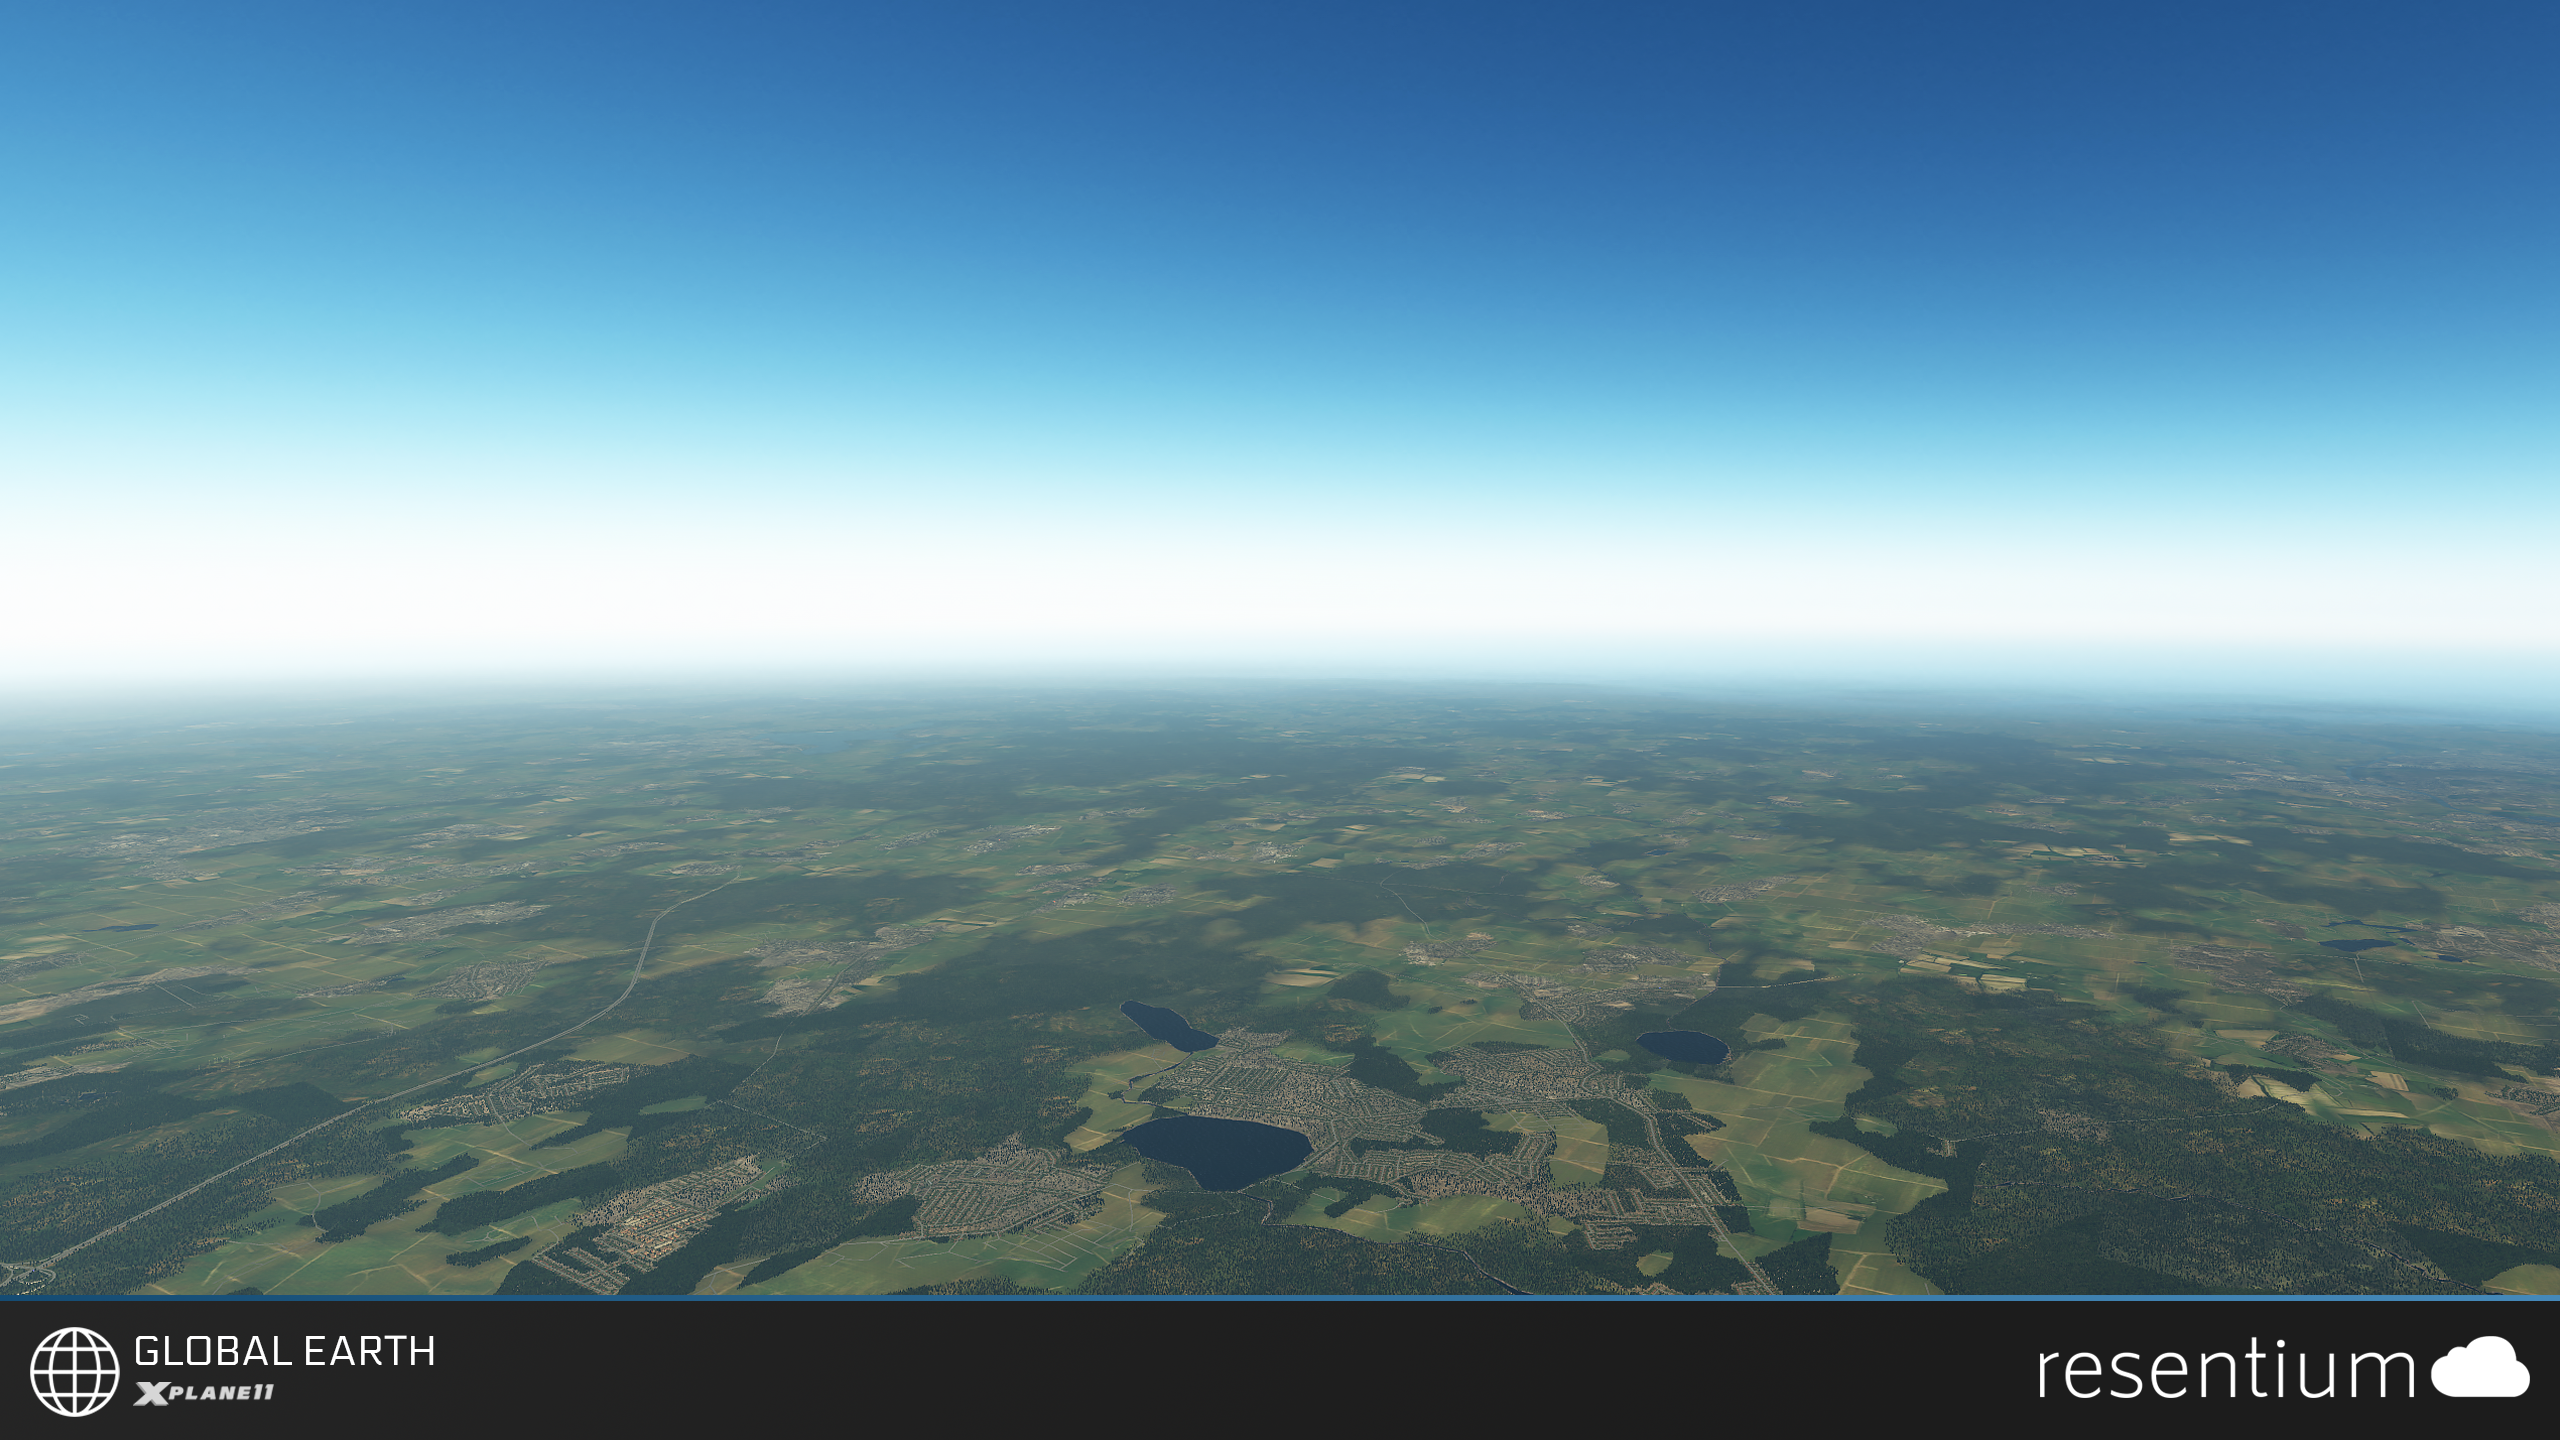 RESENTIUM.COM LTD. - GLOBAL EARTH 纹理美化工具 X-PLANE 11